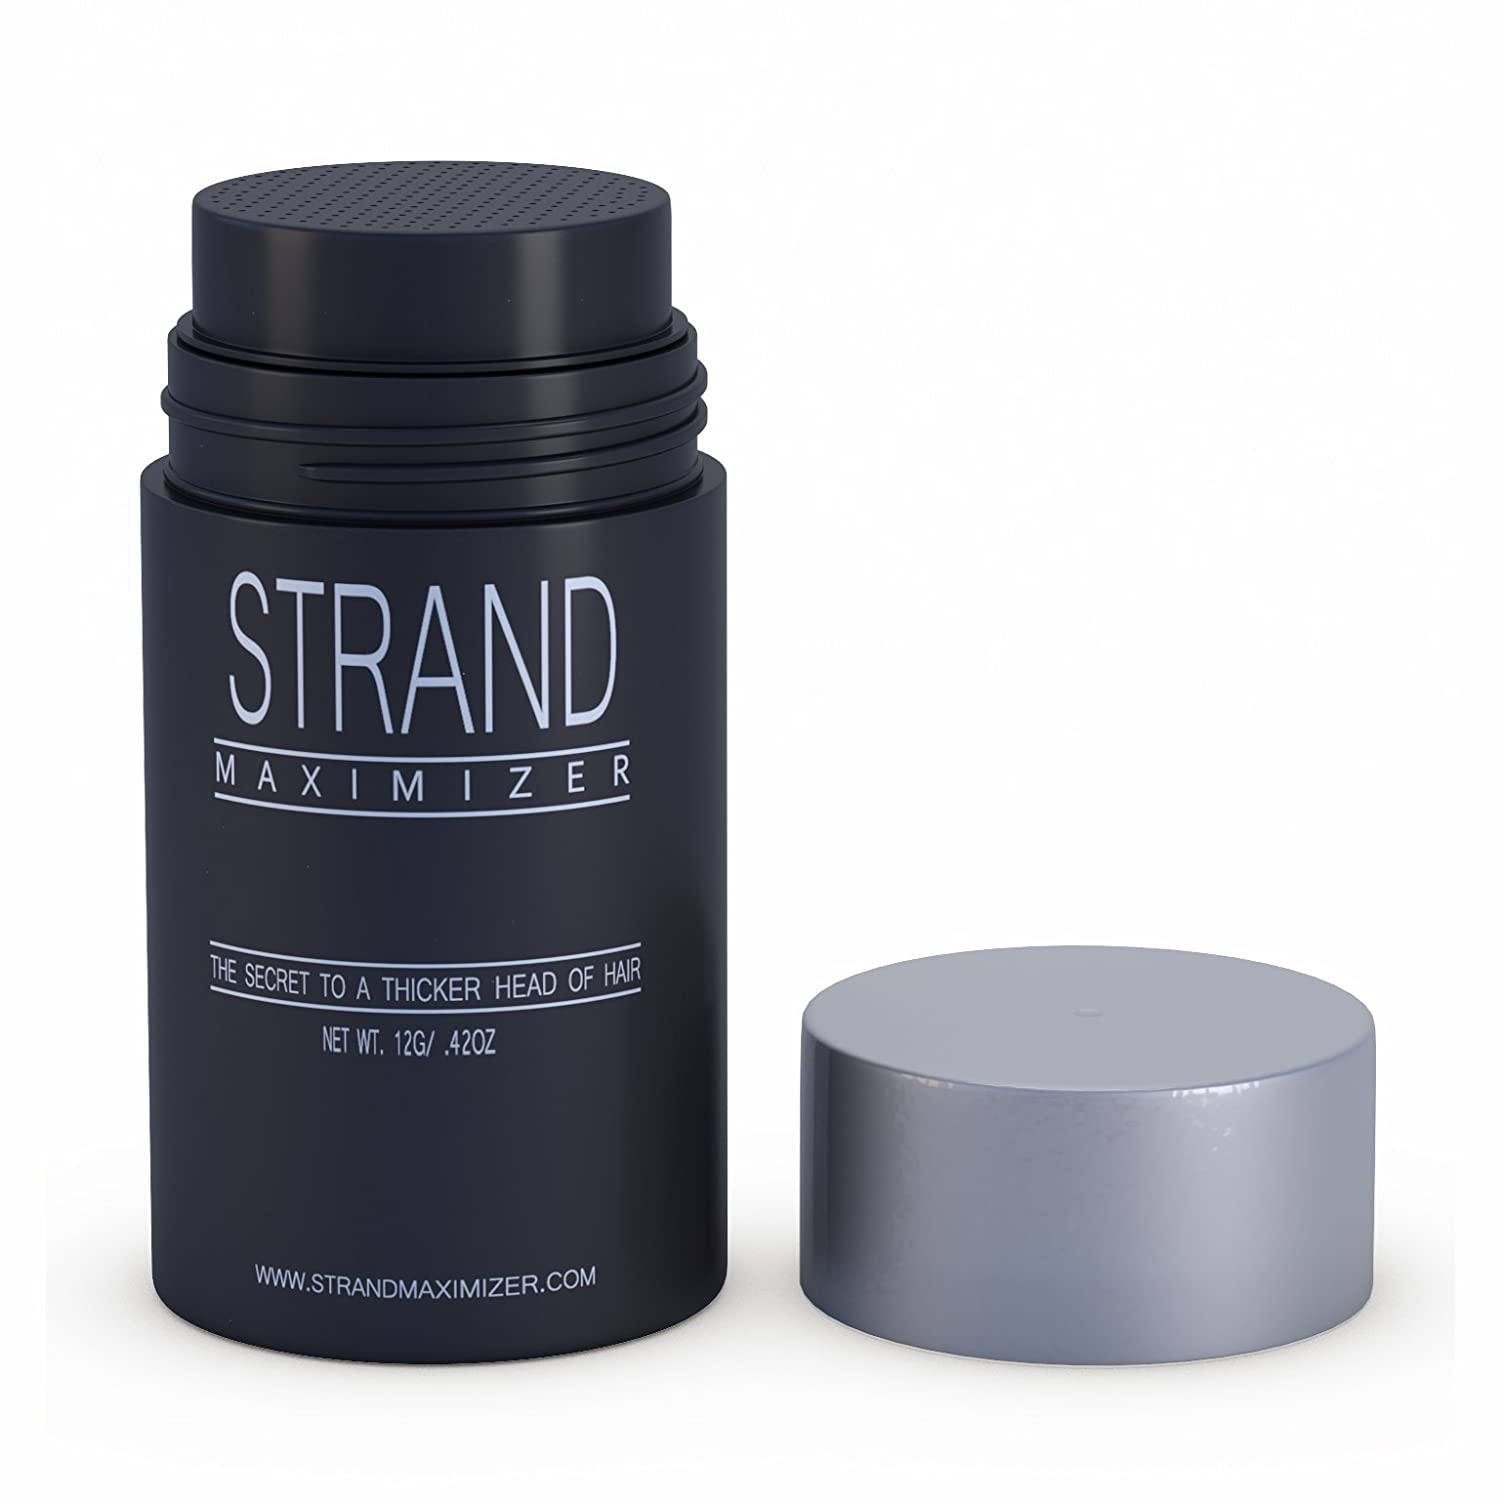 Fill In Powder Hair Fibers Hide Thinning Hair for Both Men & Women With Auburn / Red Hair, Net Wt 12g/42 OZ Strand Maximizer